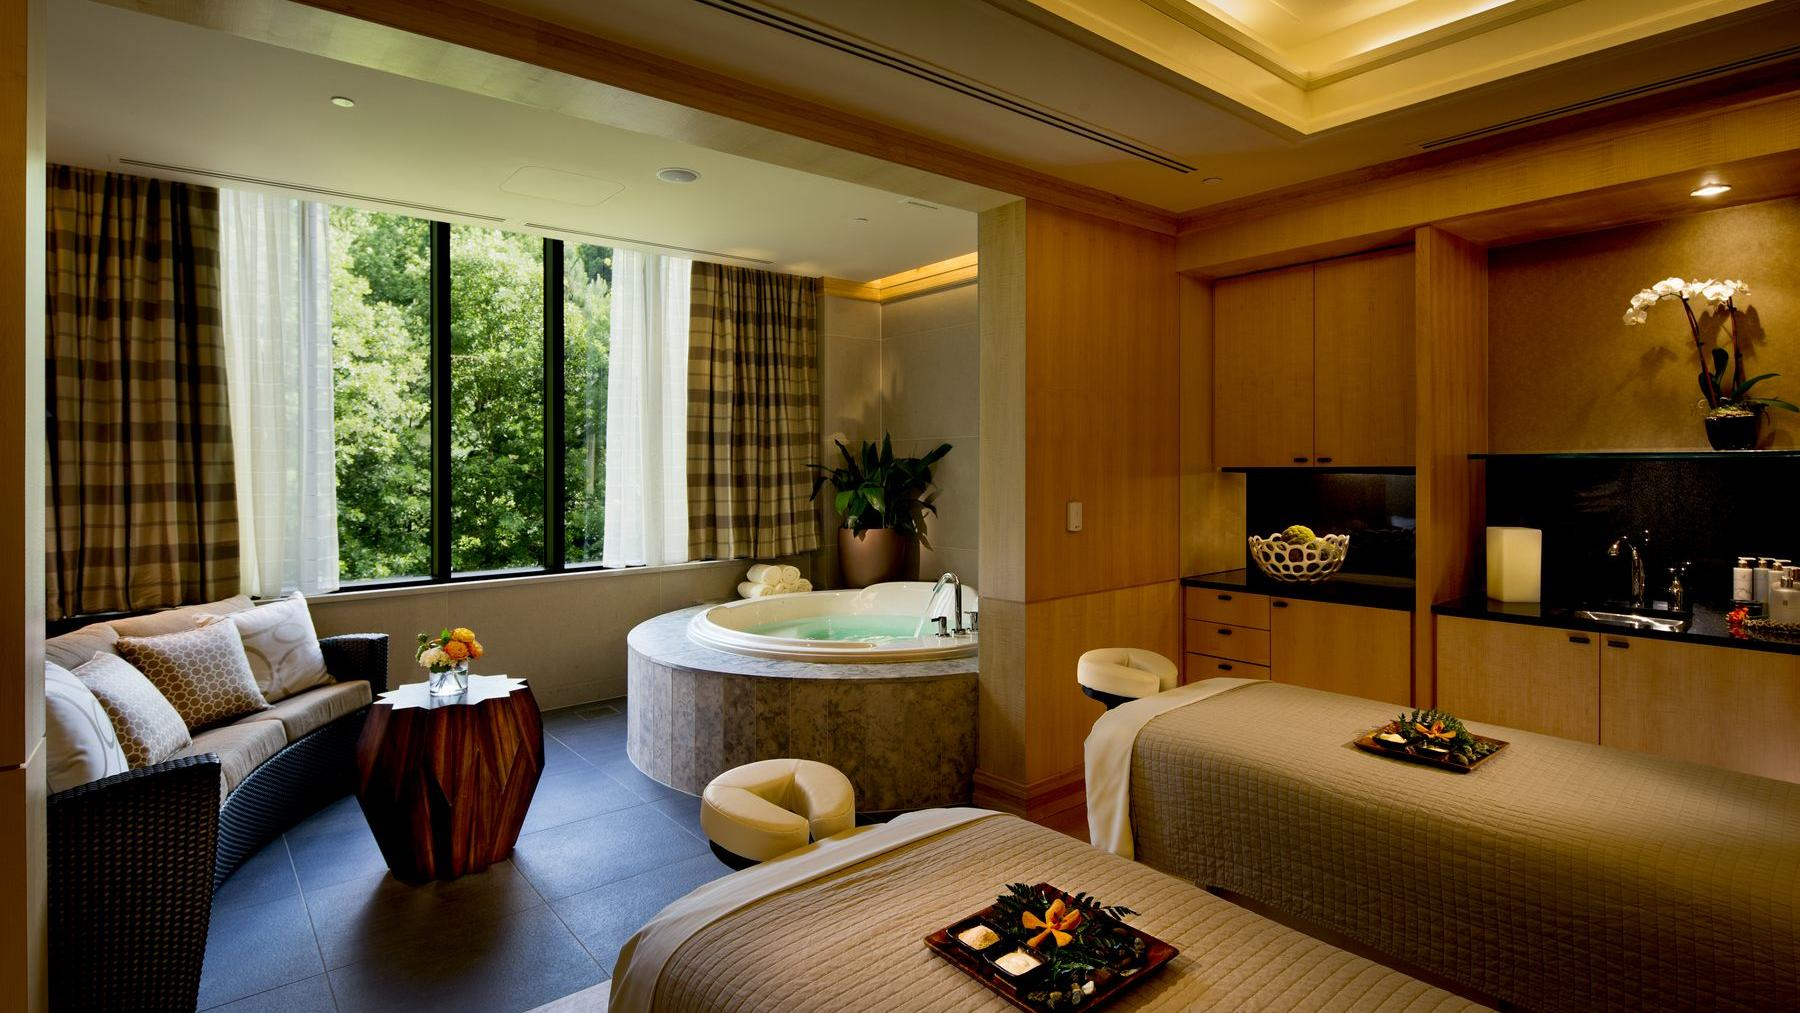 spa area with jacuzzi and massage chairs